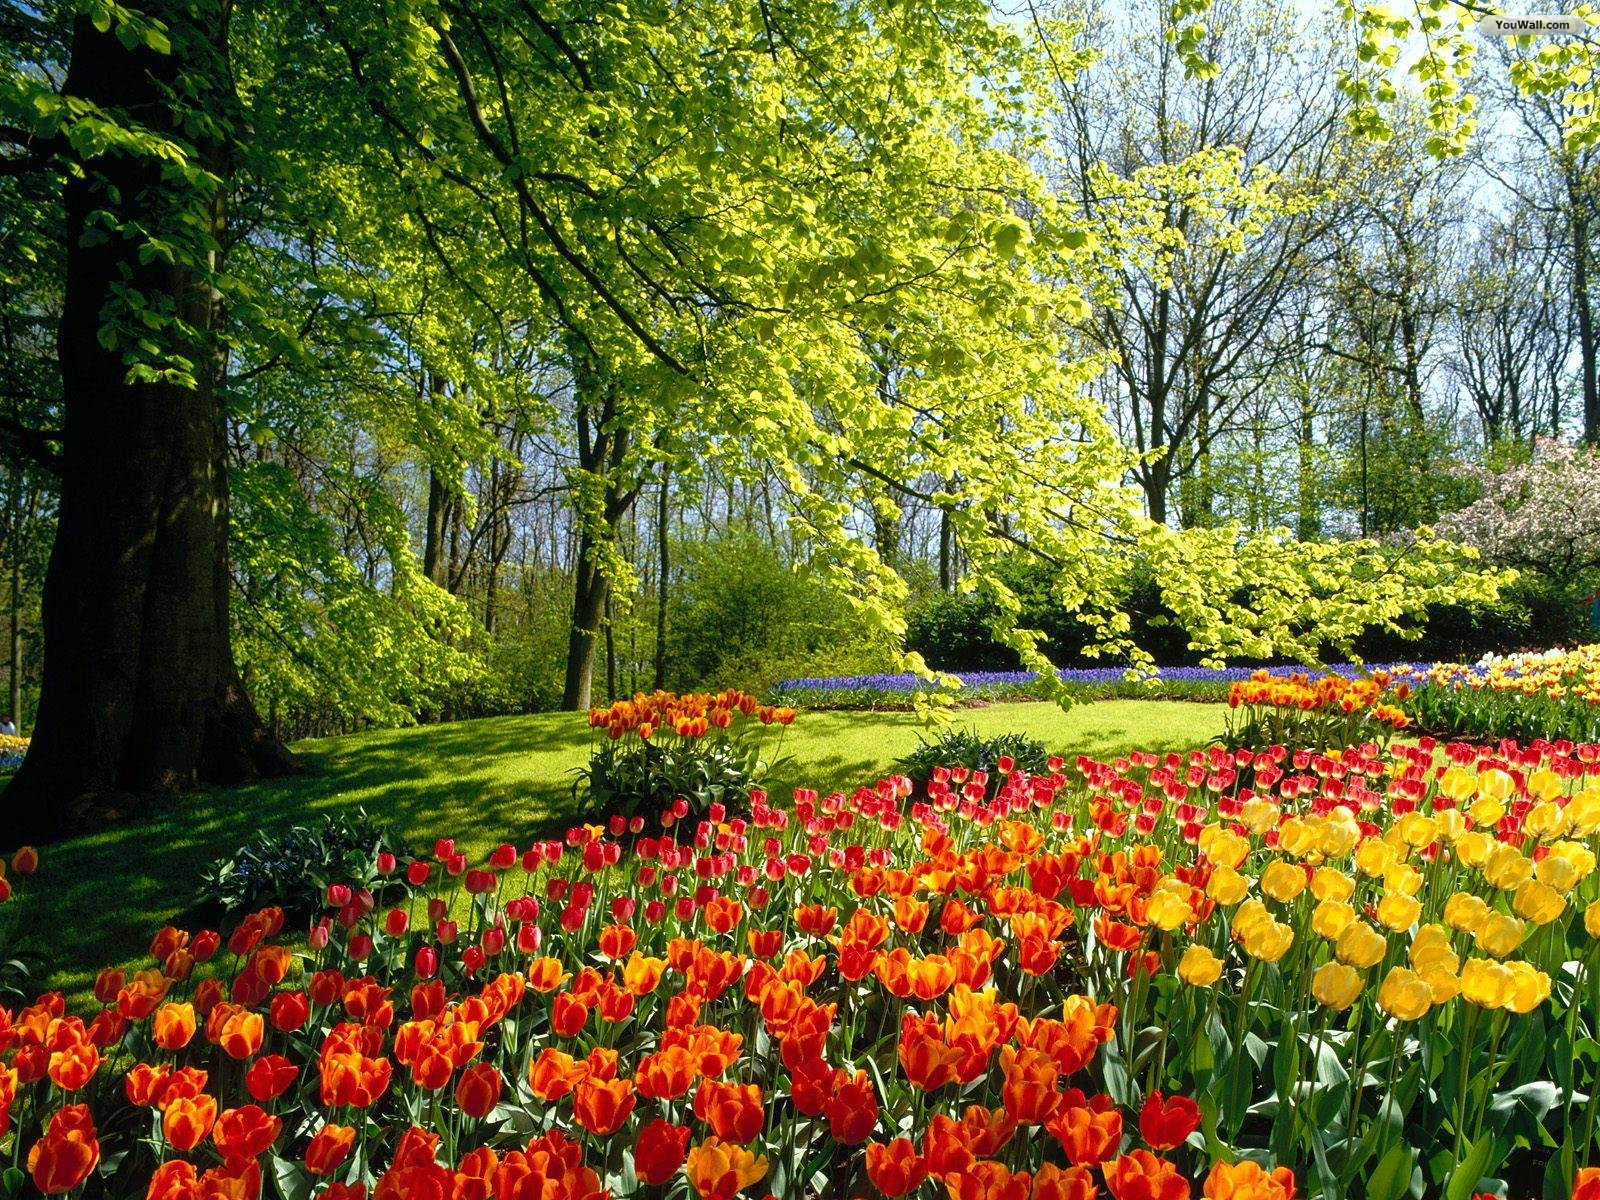 76 ] Flower Garden Wallpapers On WallpaperSafari